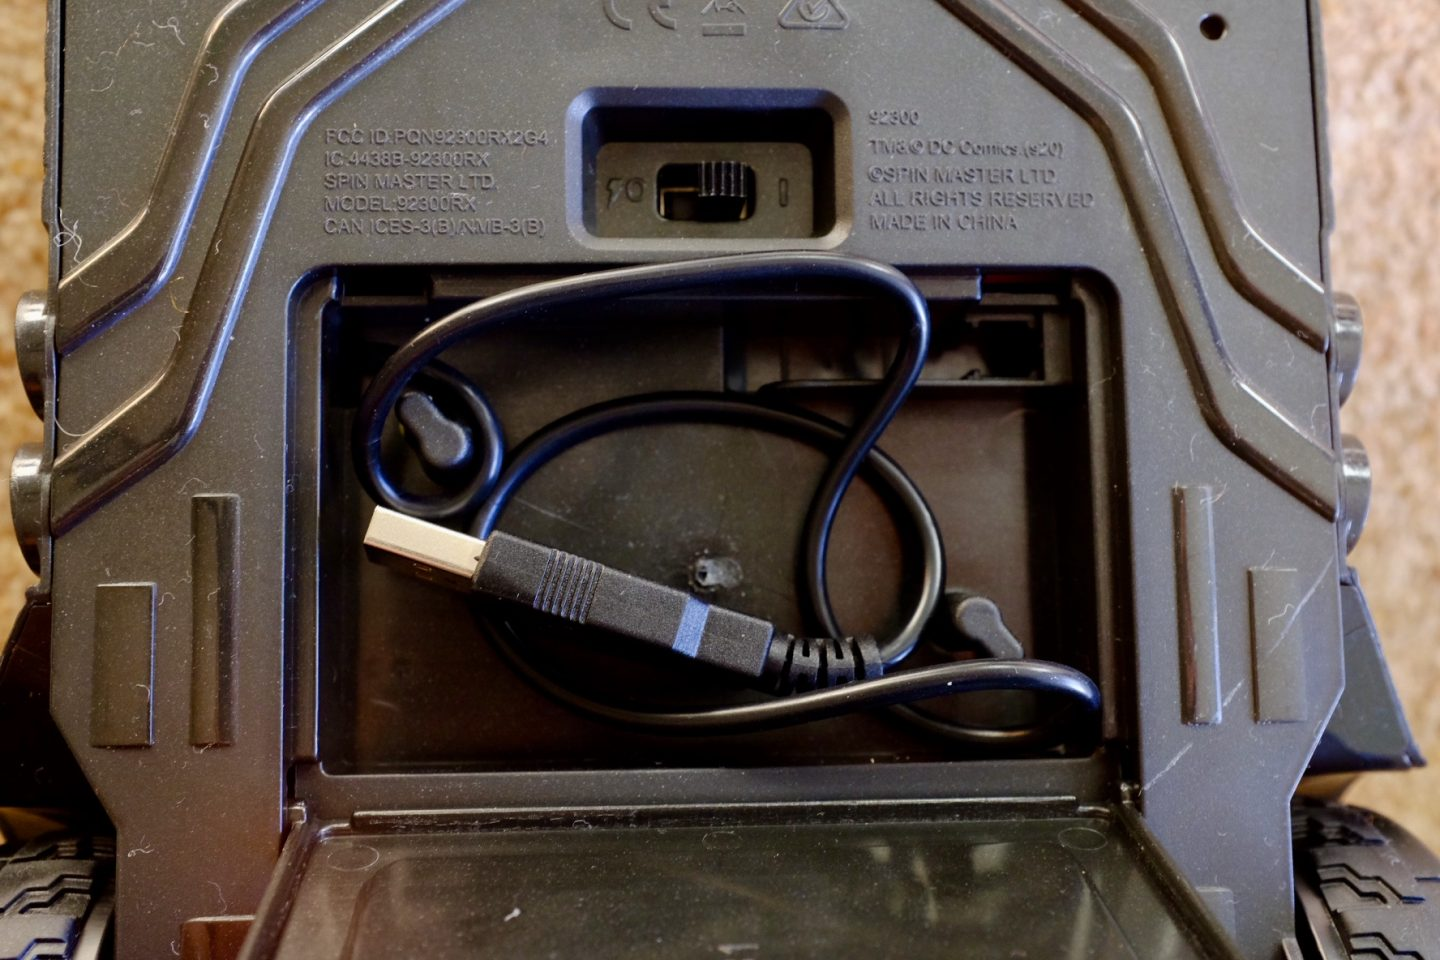 USB charger for the batmobile